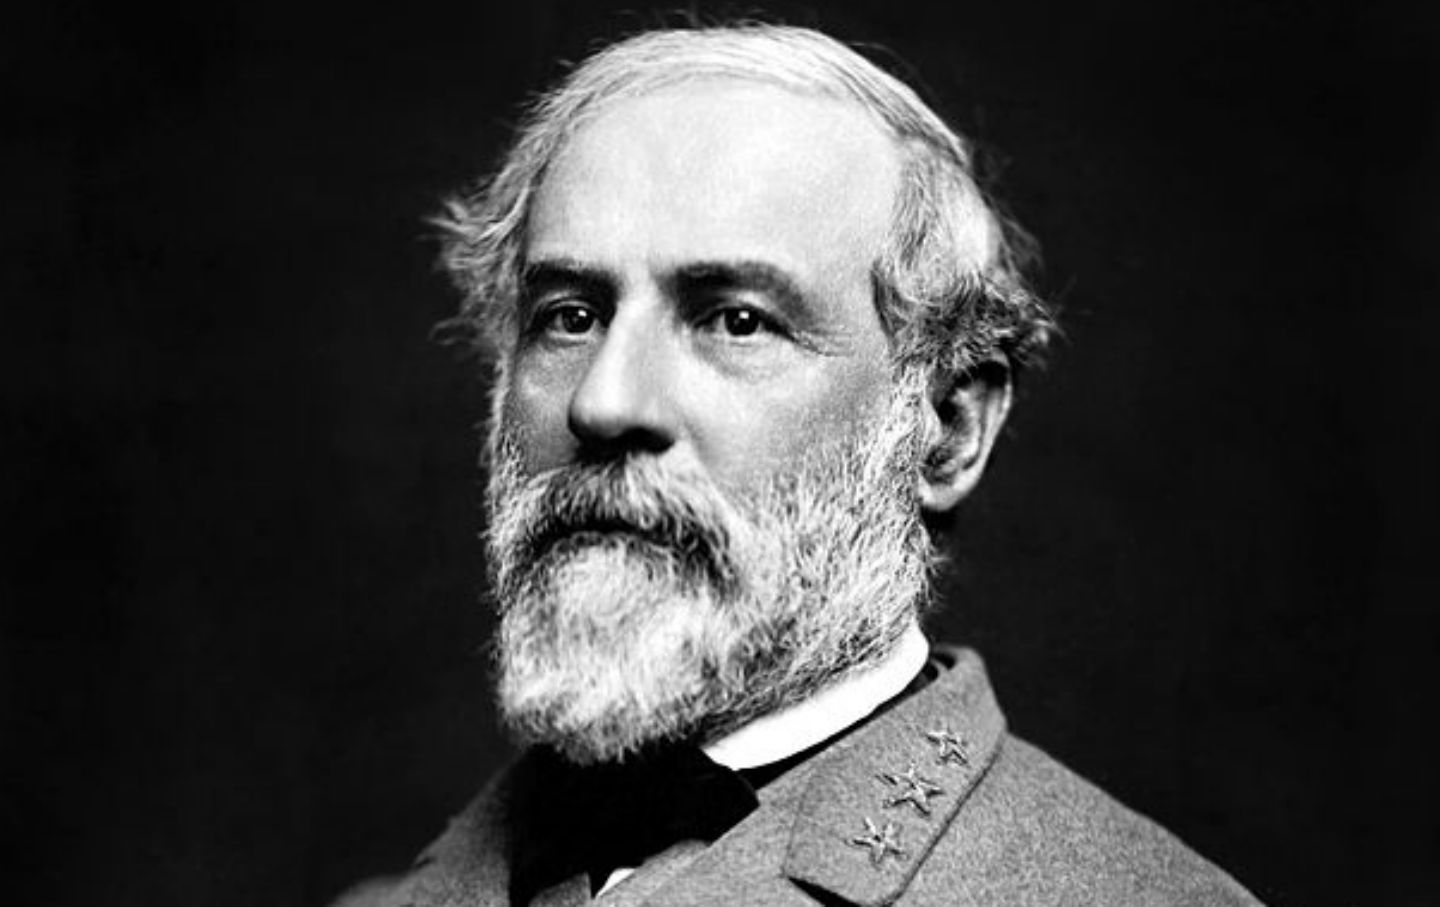 education and political career of robert edward lee A biography of the life and military career of robert edward lee 2,579 words 6 pages the inspiration of courage and risk taking from the life of robert edward lee 437 words 1 page a biography of robert edward lee, an american civil war general 381 words.